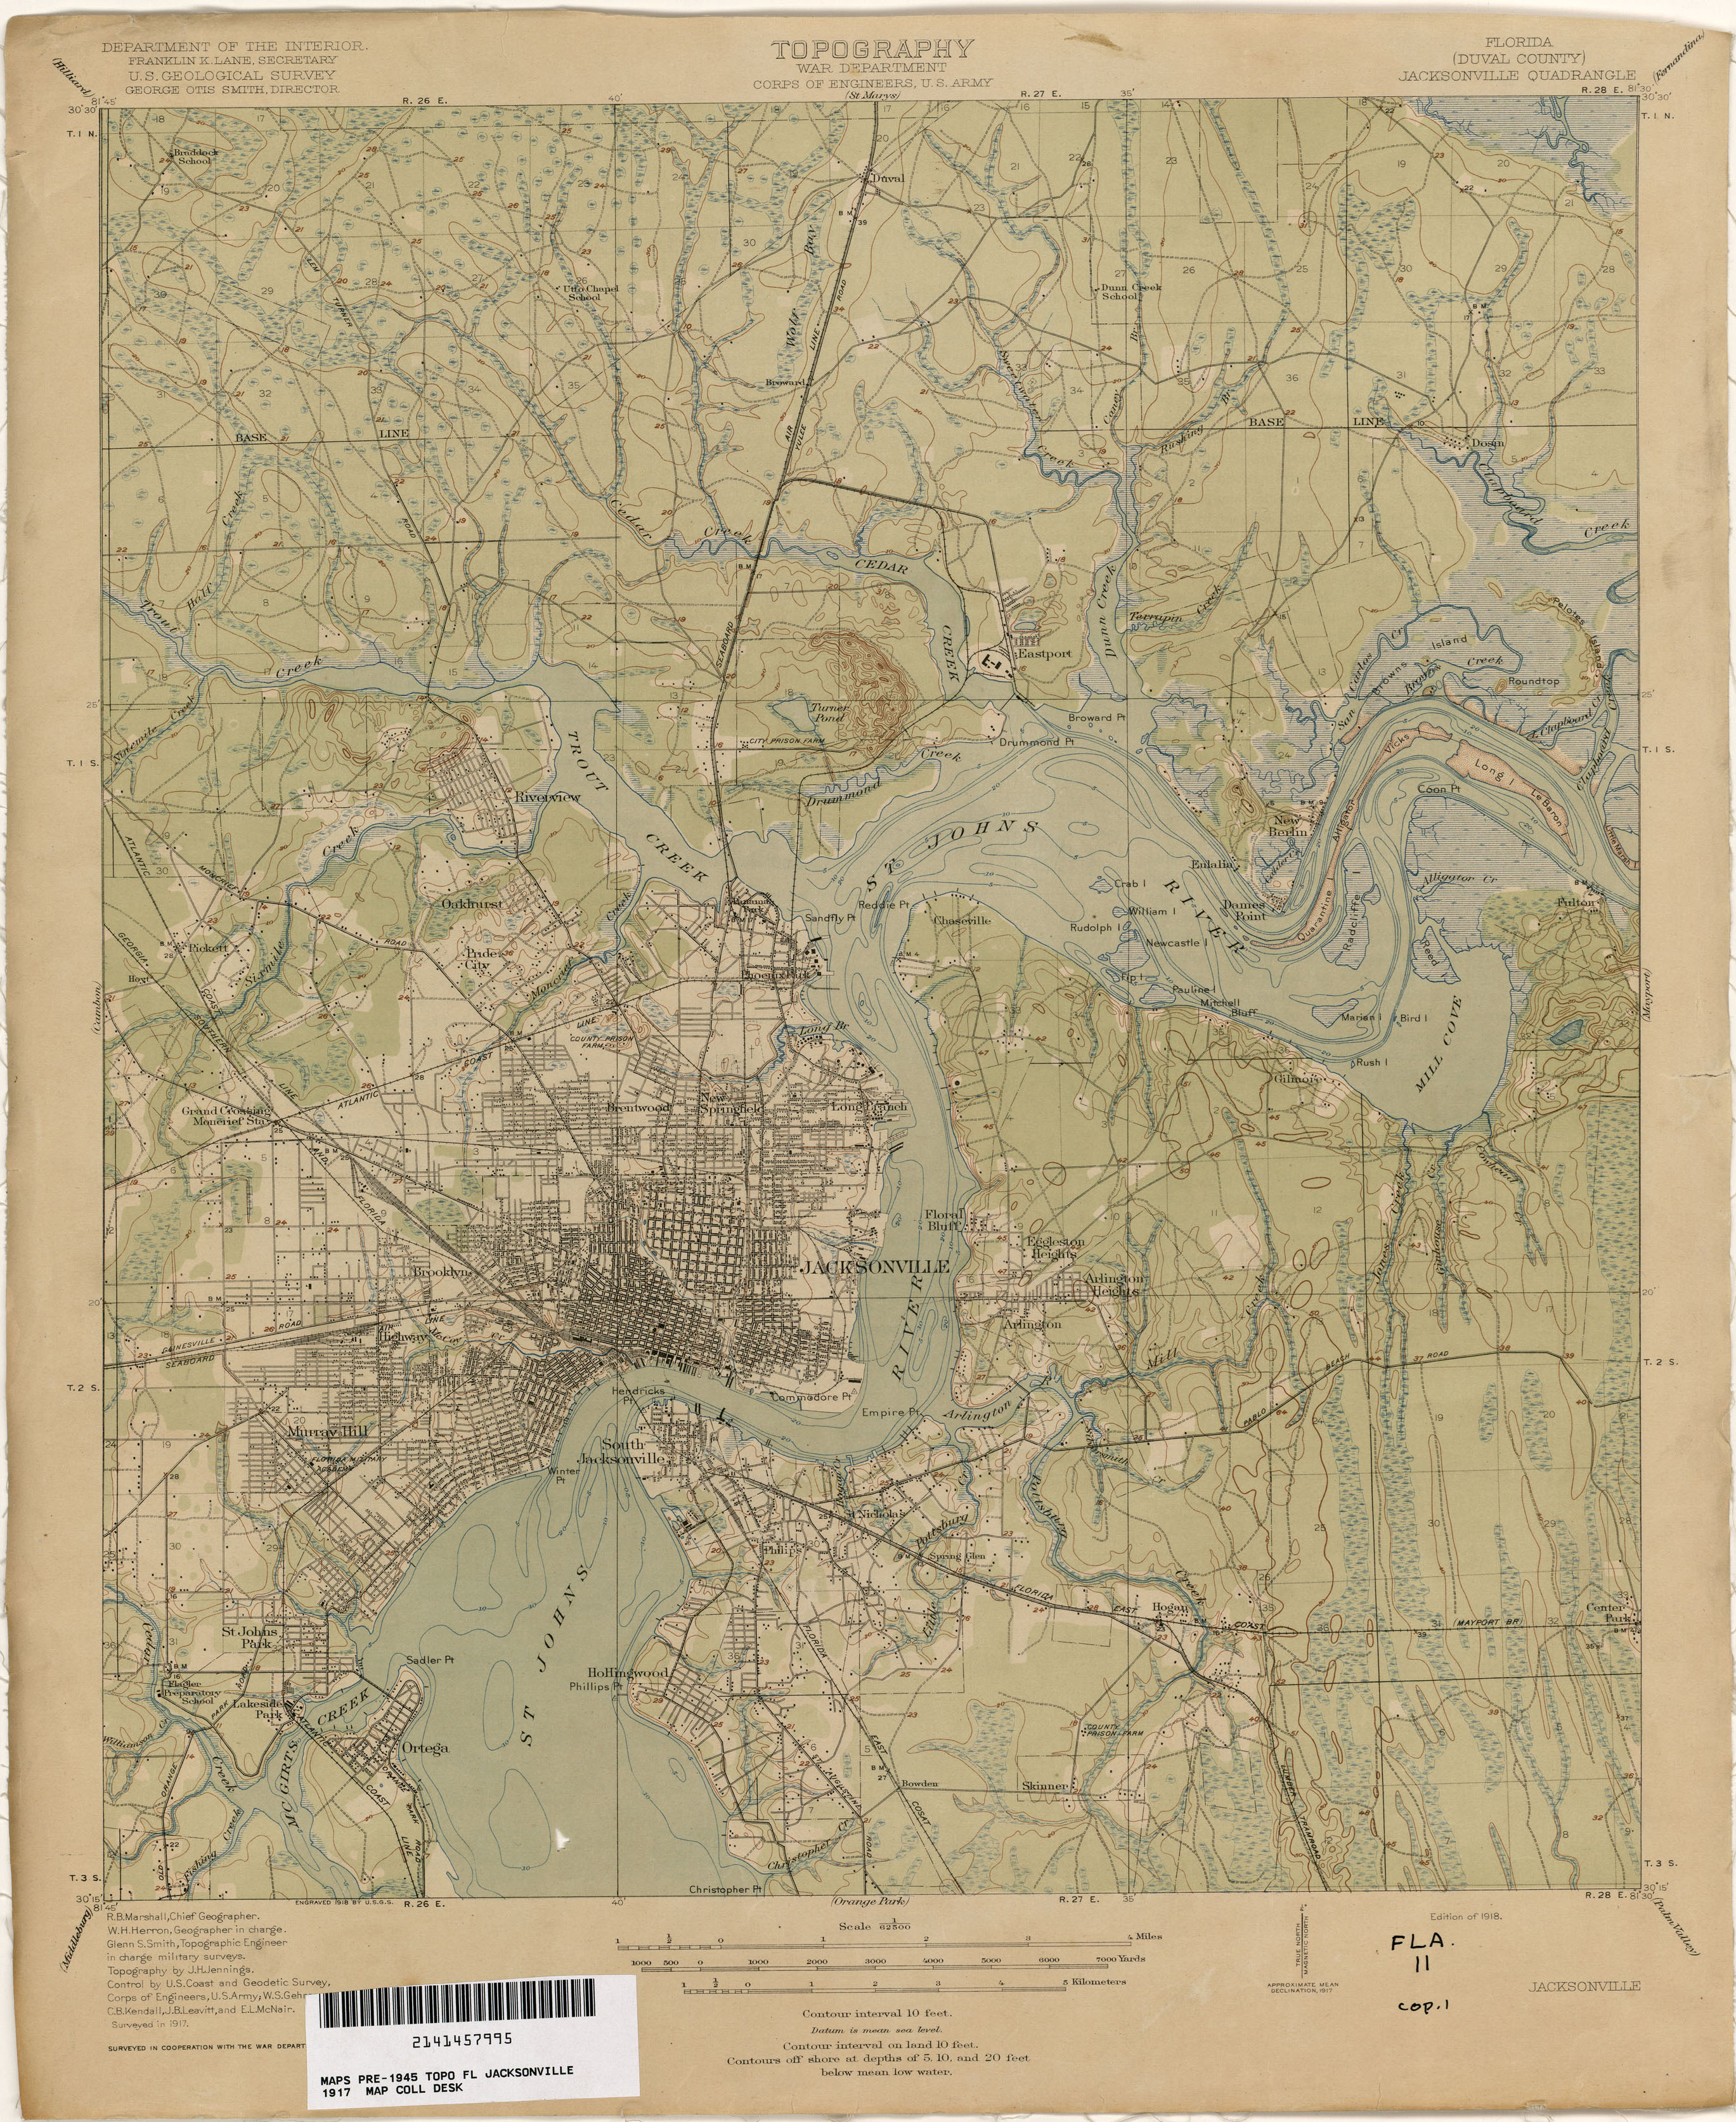 Map Of Jacksonville Georgia.Florida Historical Topographic Maps Perry Castaneda Map Collection